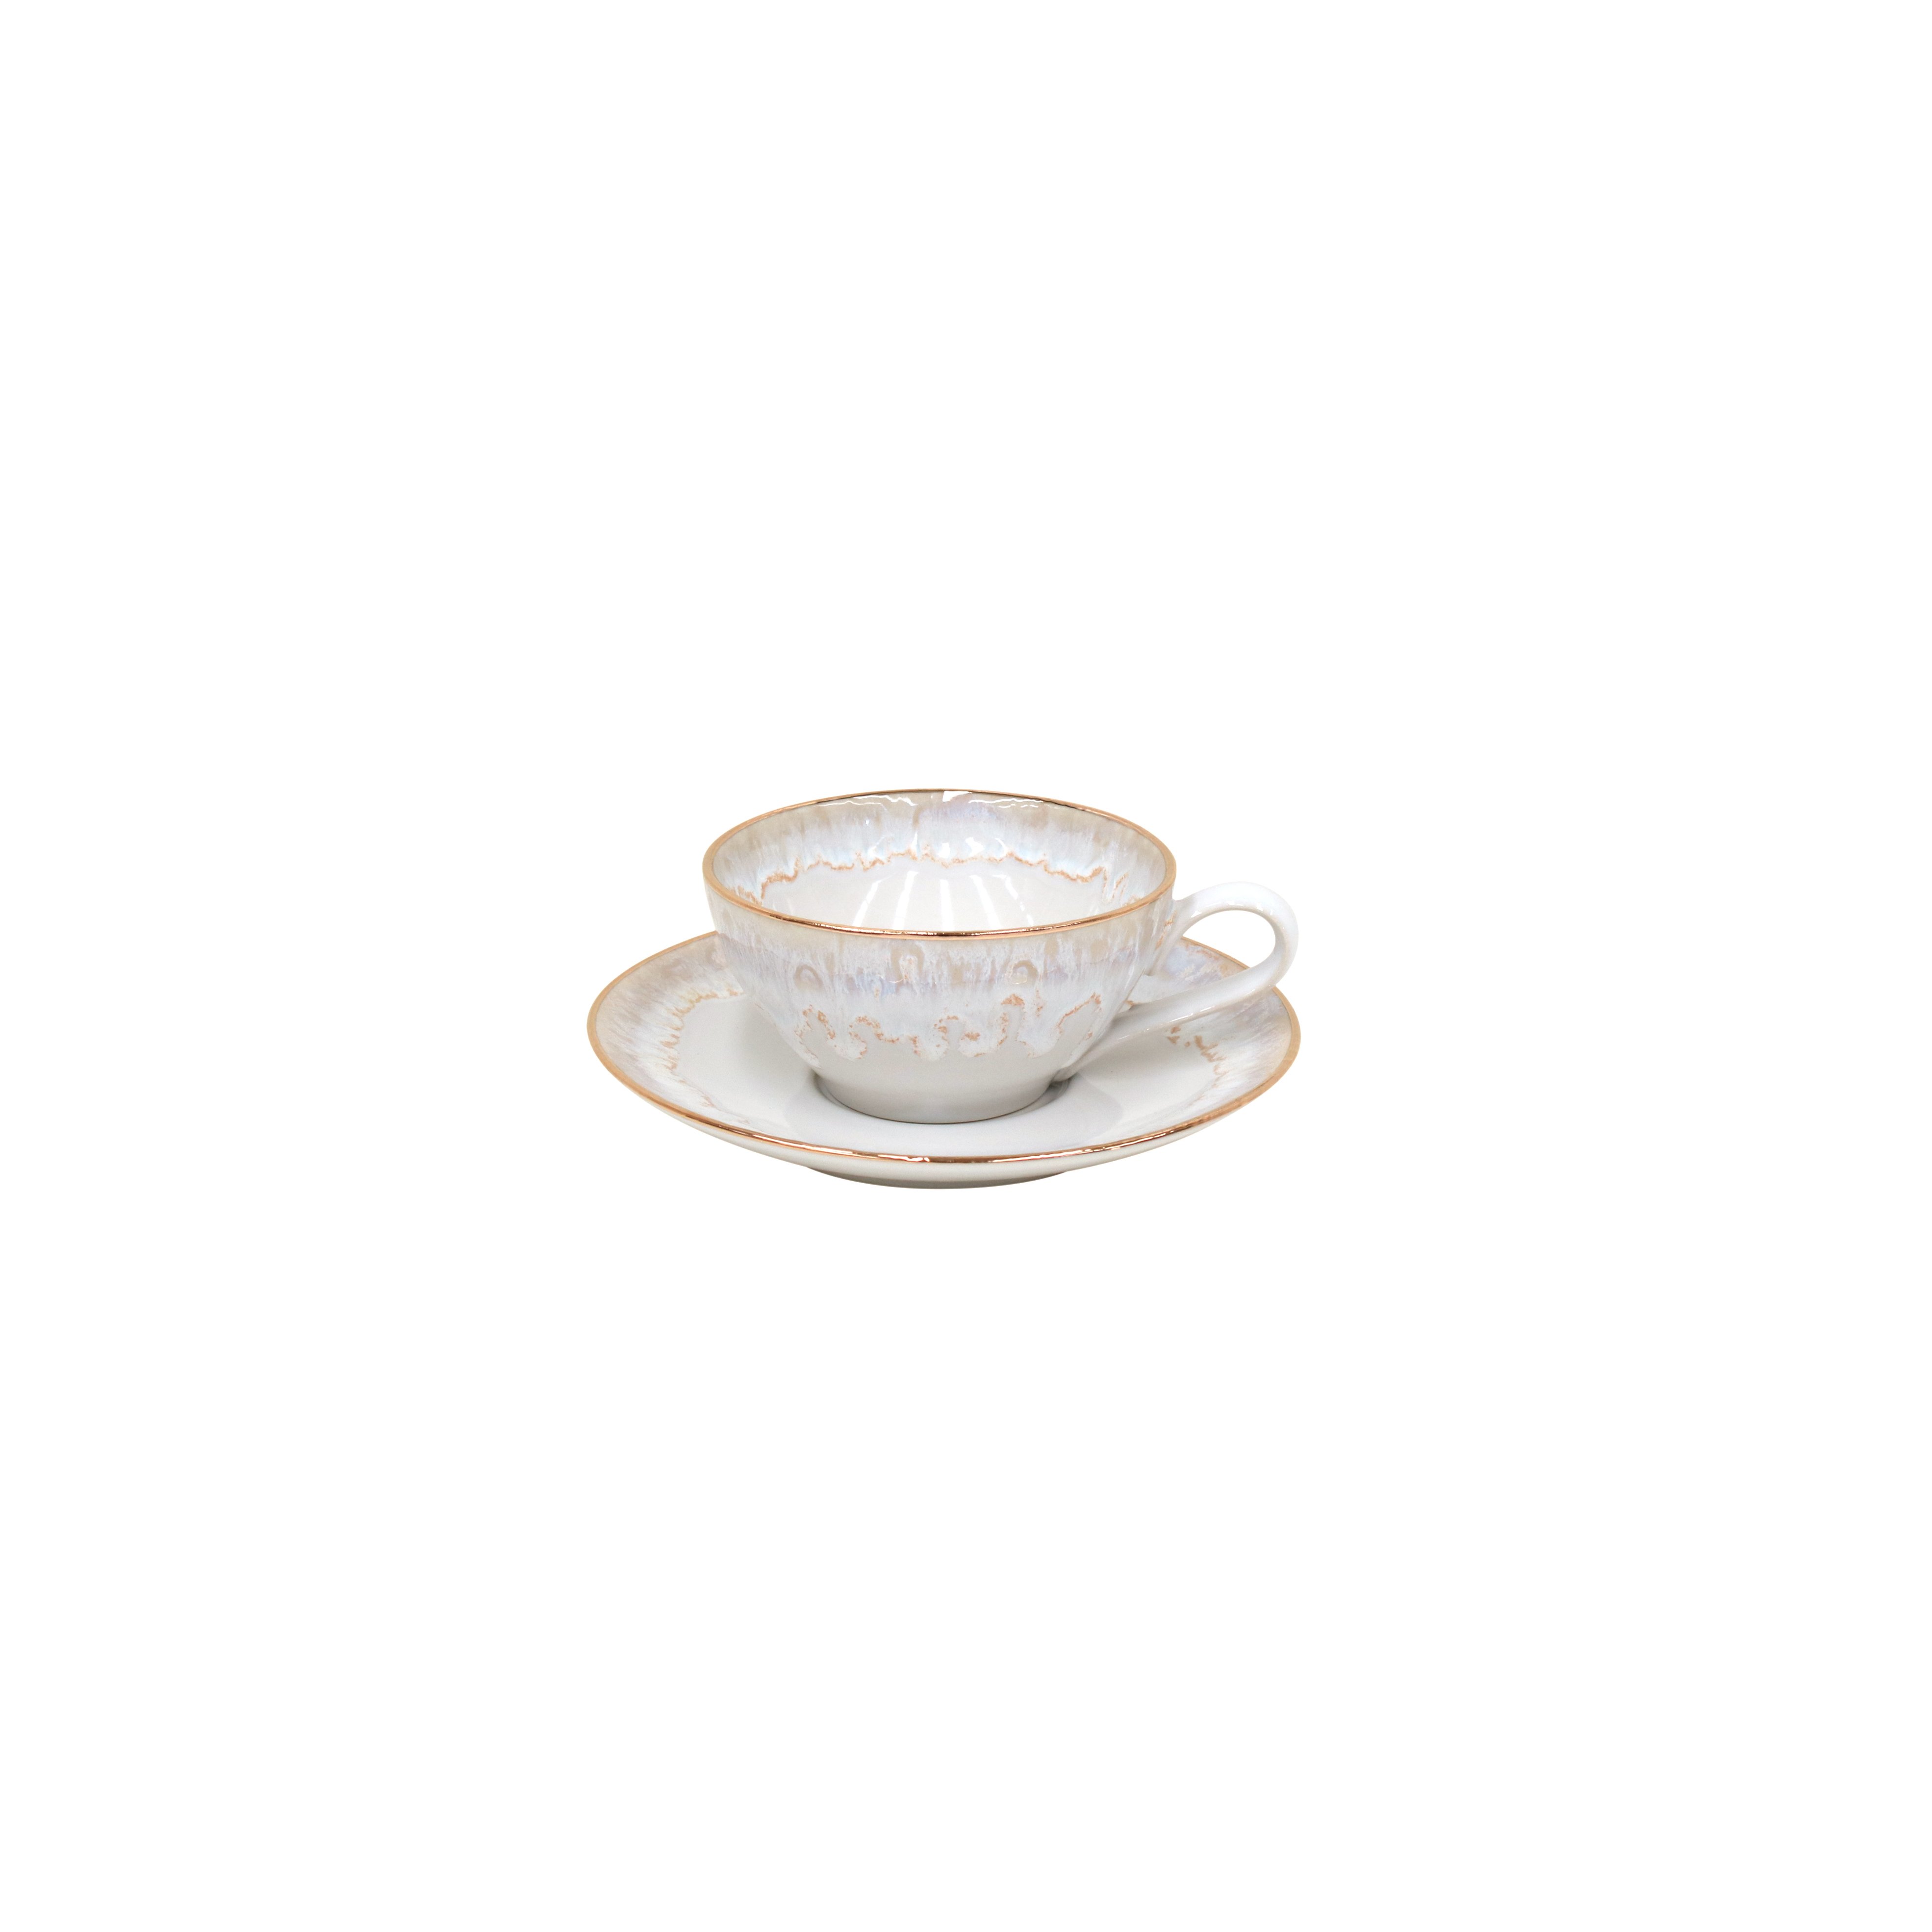 Taormina White Gold Teacup & Saucer 0.2l X6 Sparkle Gift